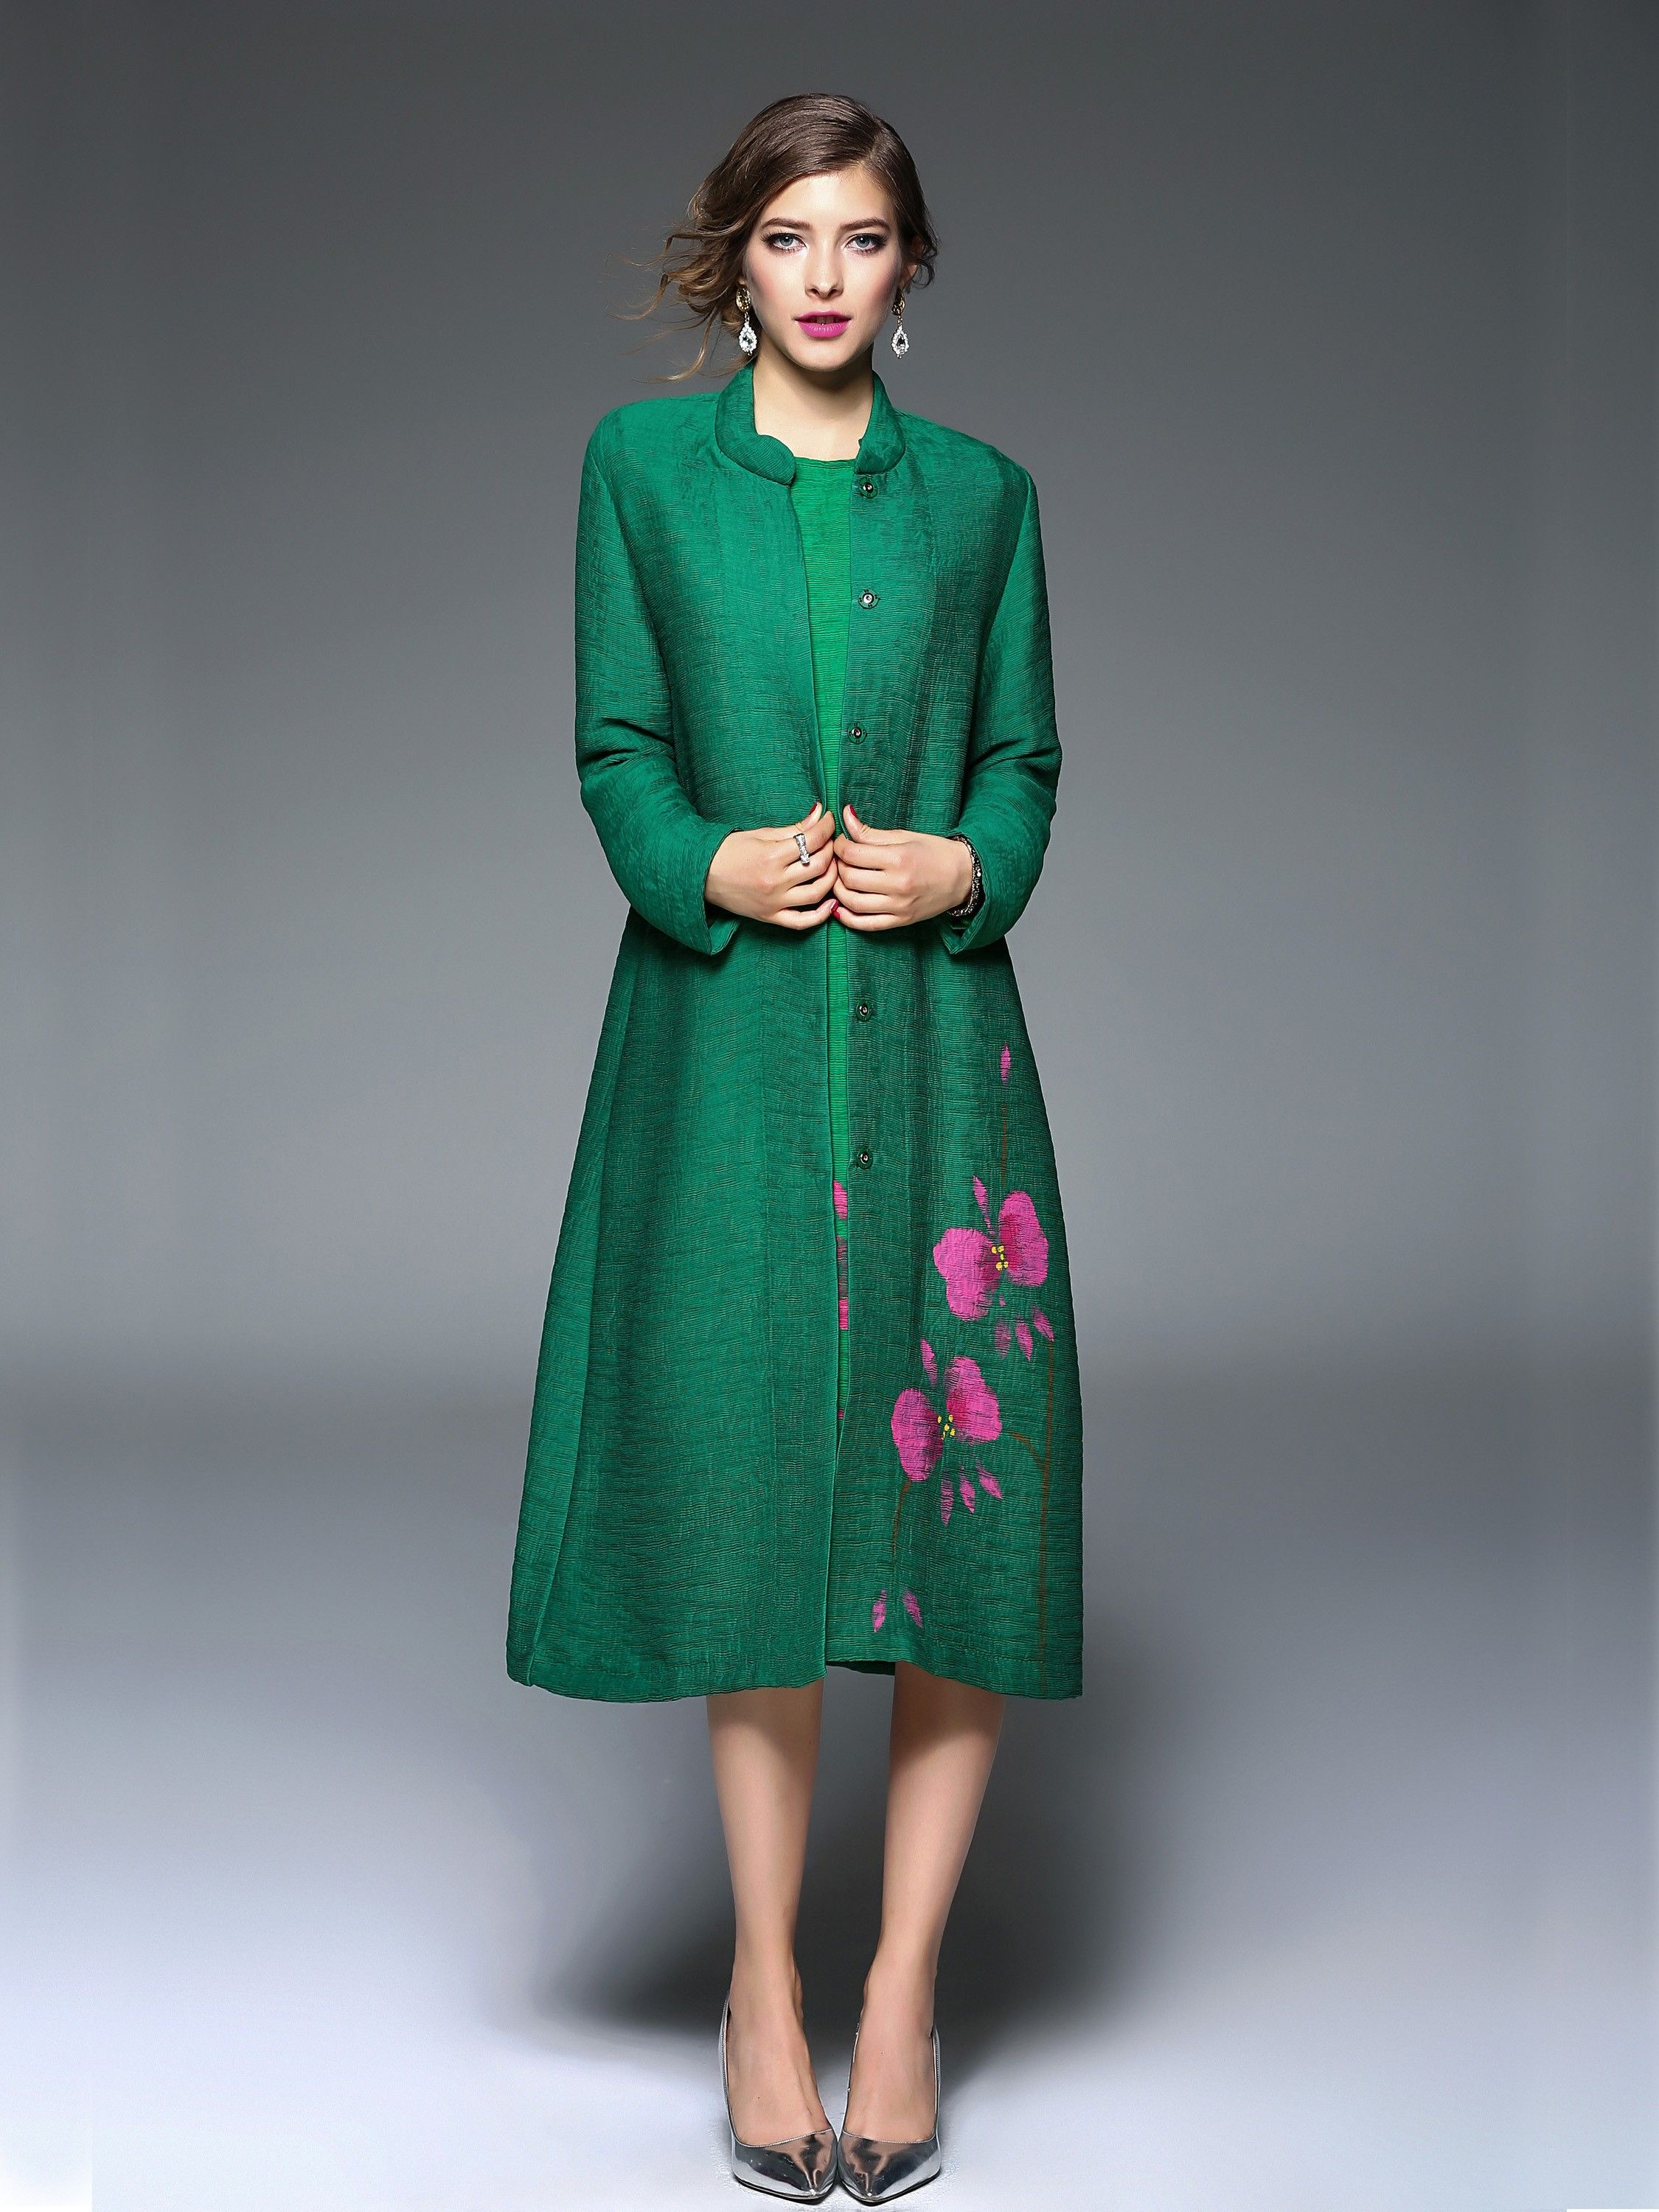 Green polyester floral print long sleeve single breasted dress coat